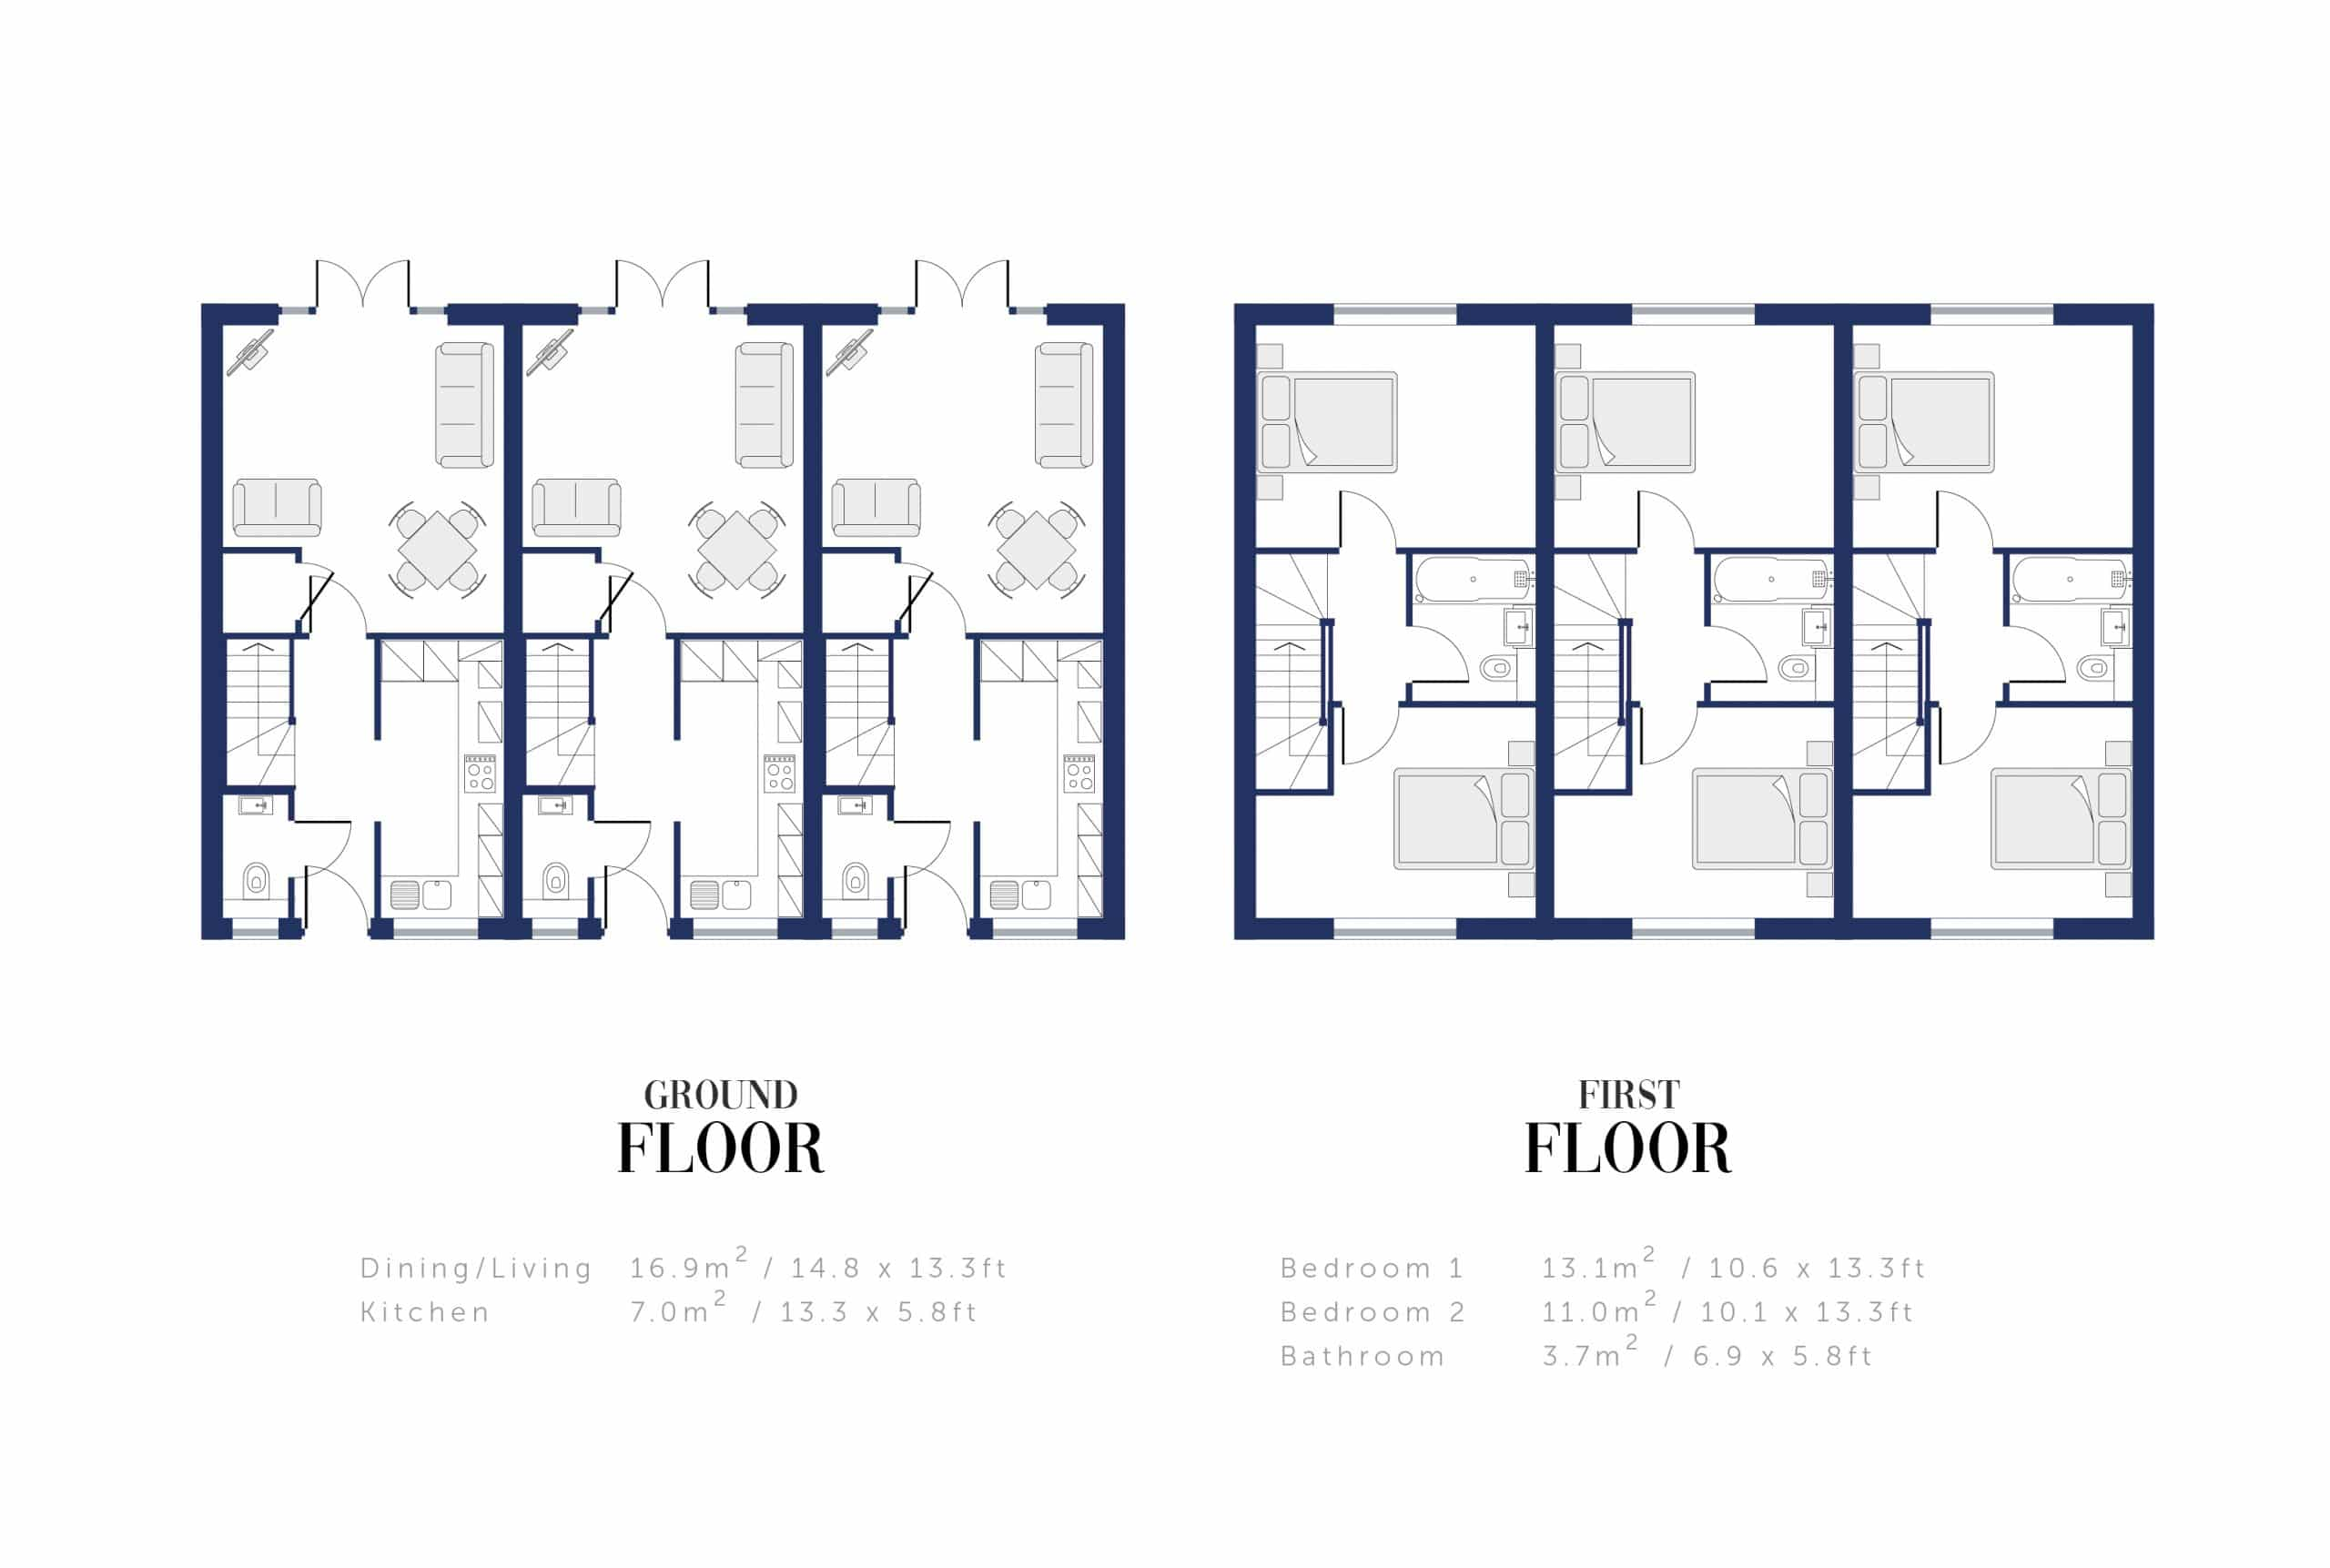 Sunningdale Millers Floor Plan and Sizing for WEB